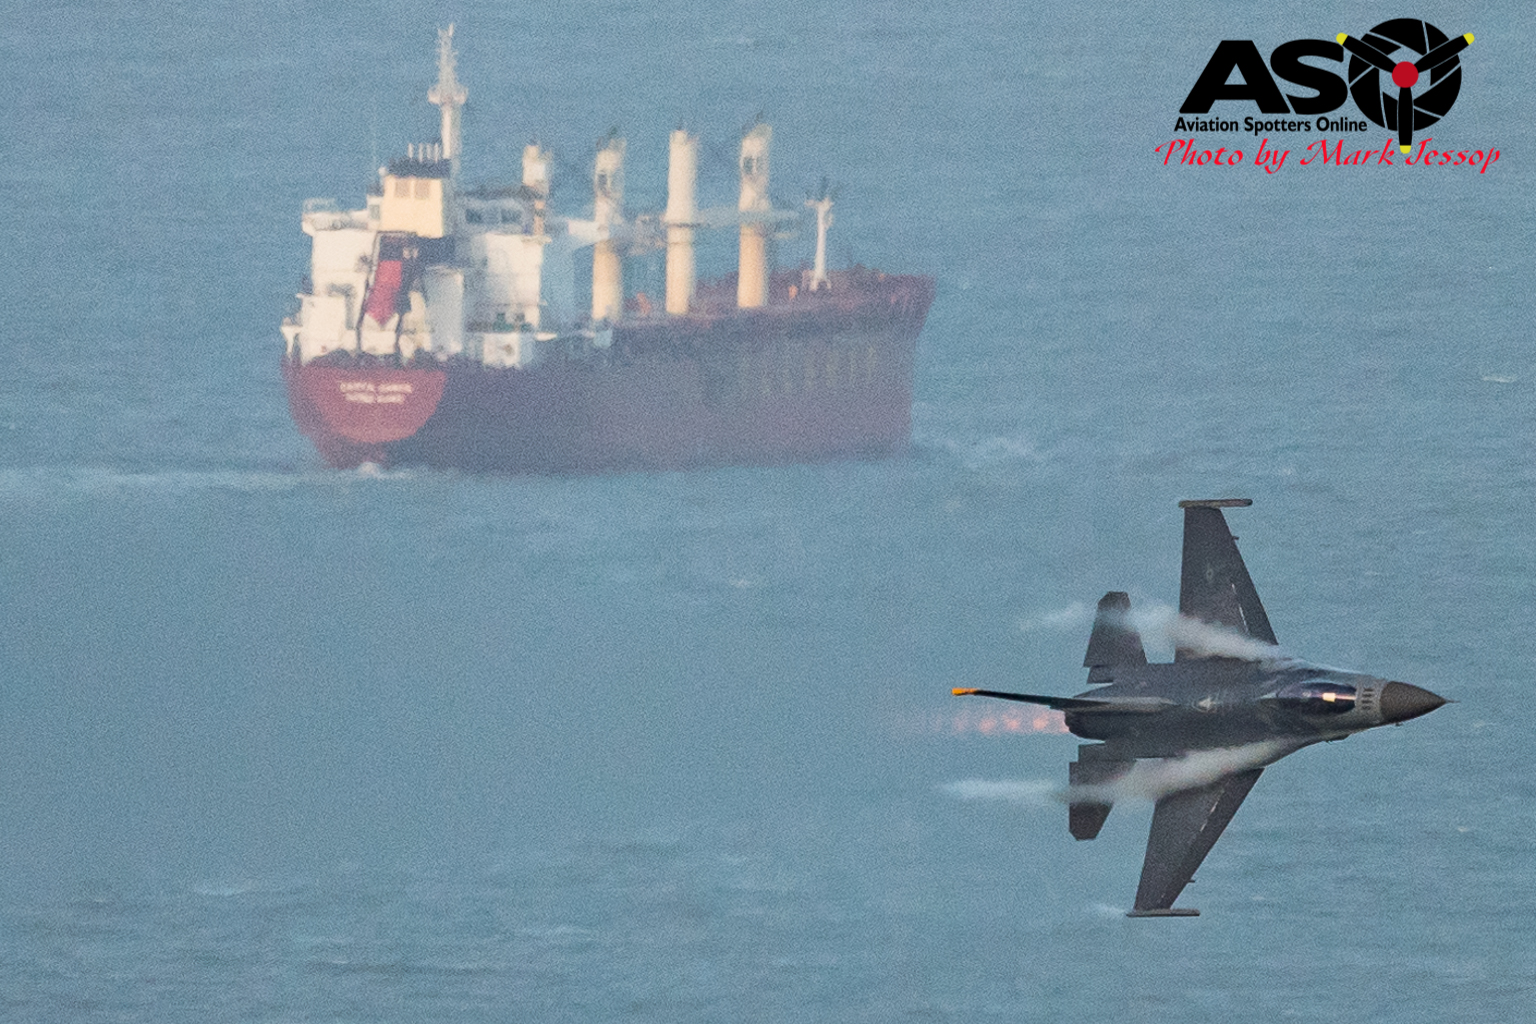 USAF F-16 turning hard with Ship